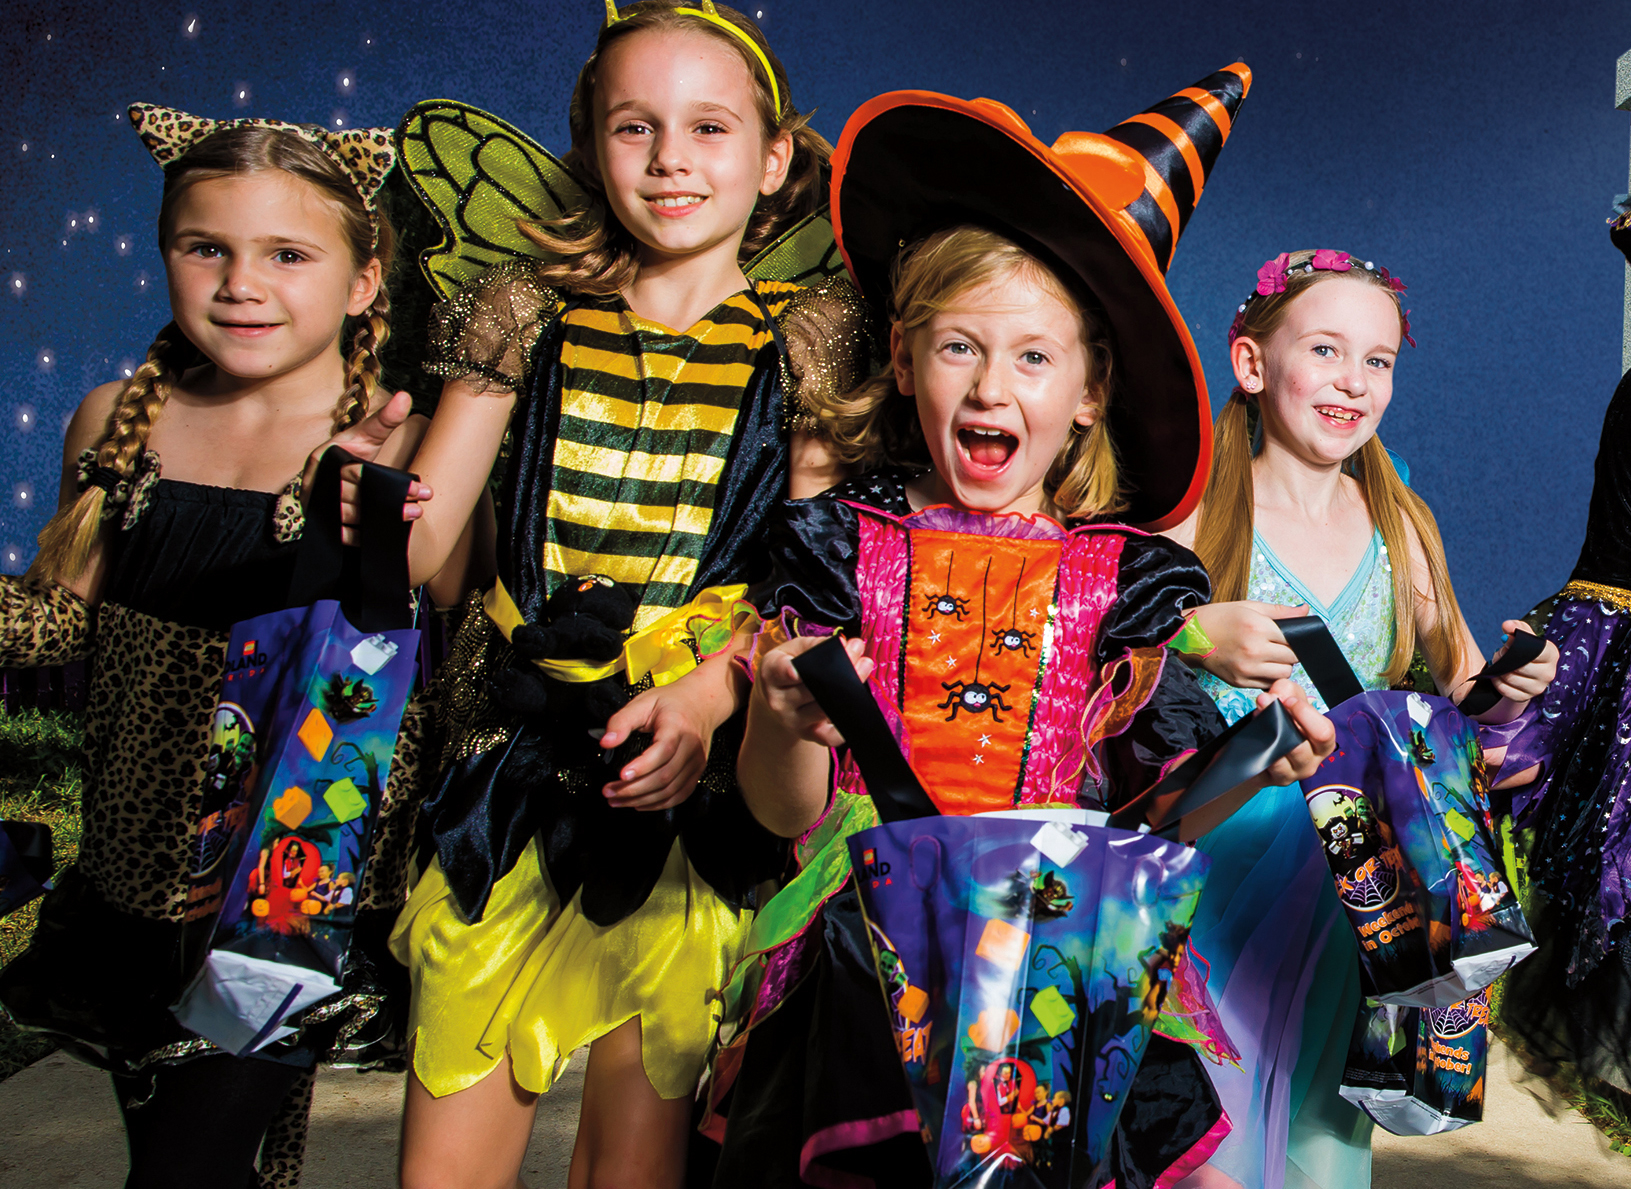 Kids modeling in Halloween costumes for Brick-or-Treat in Chicago